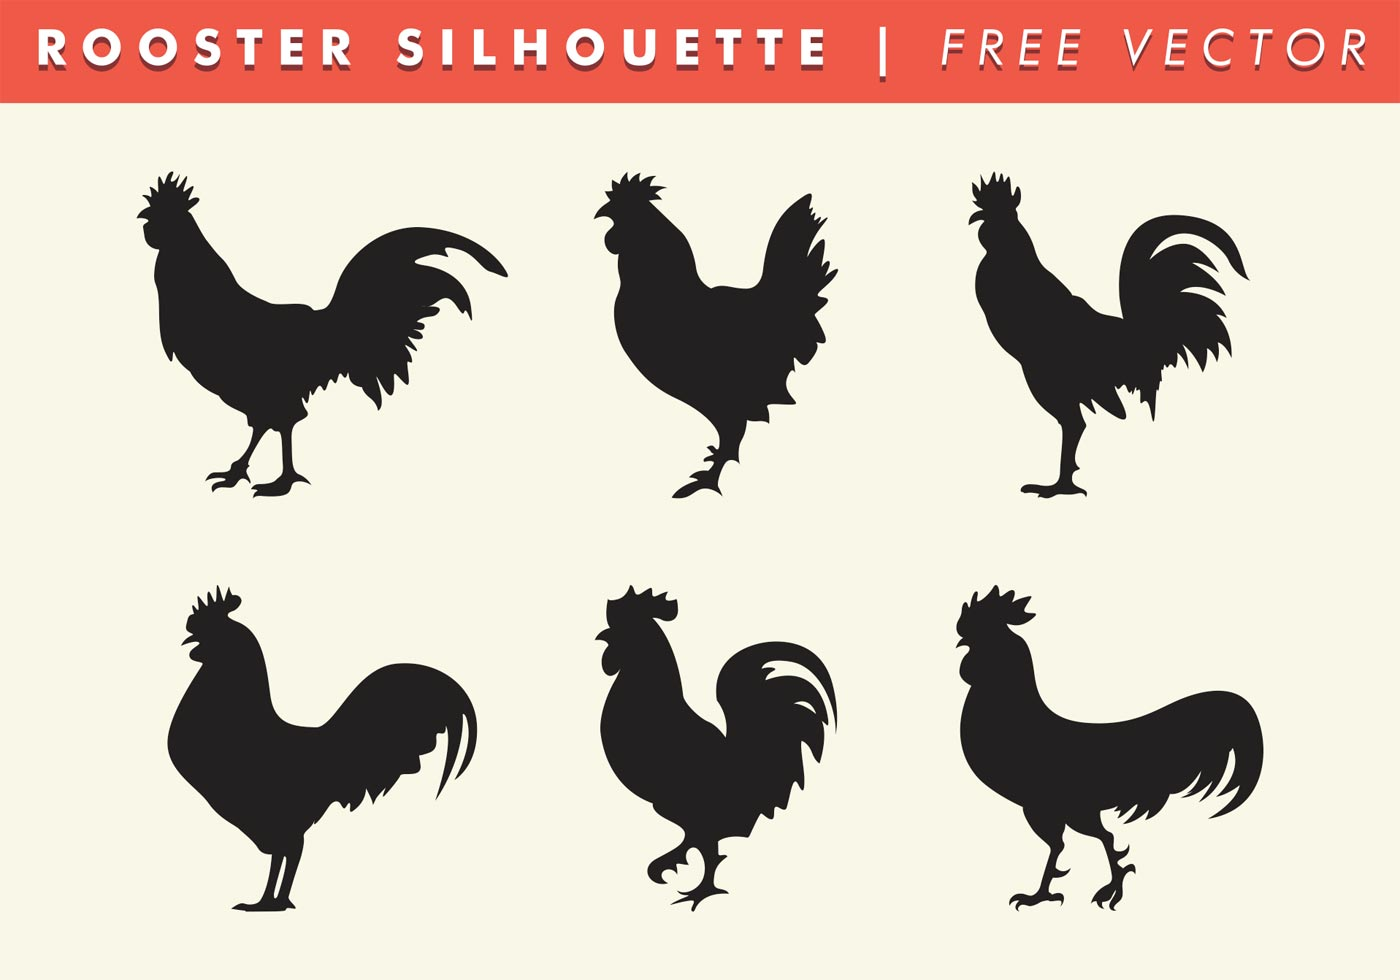 Rooster Silhouette Vector Free Download Free Vector Art